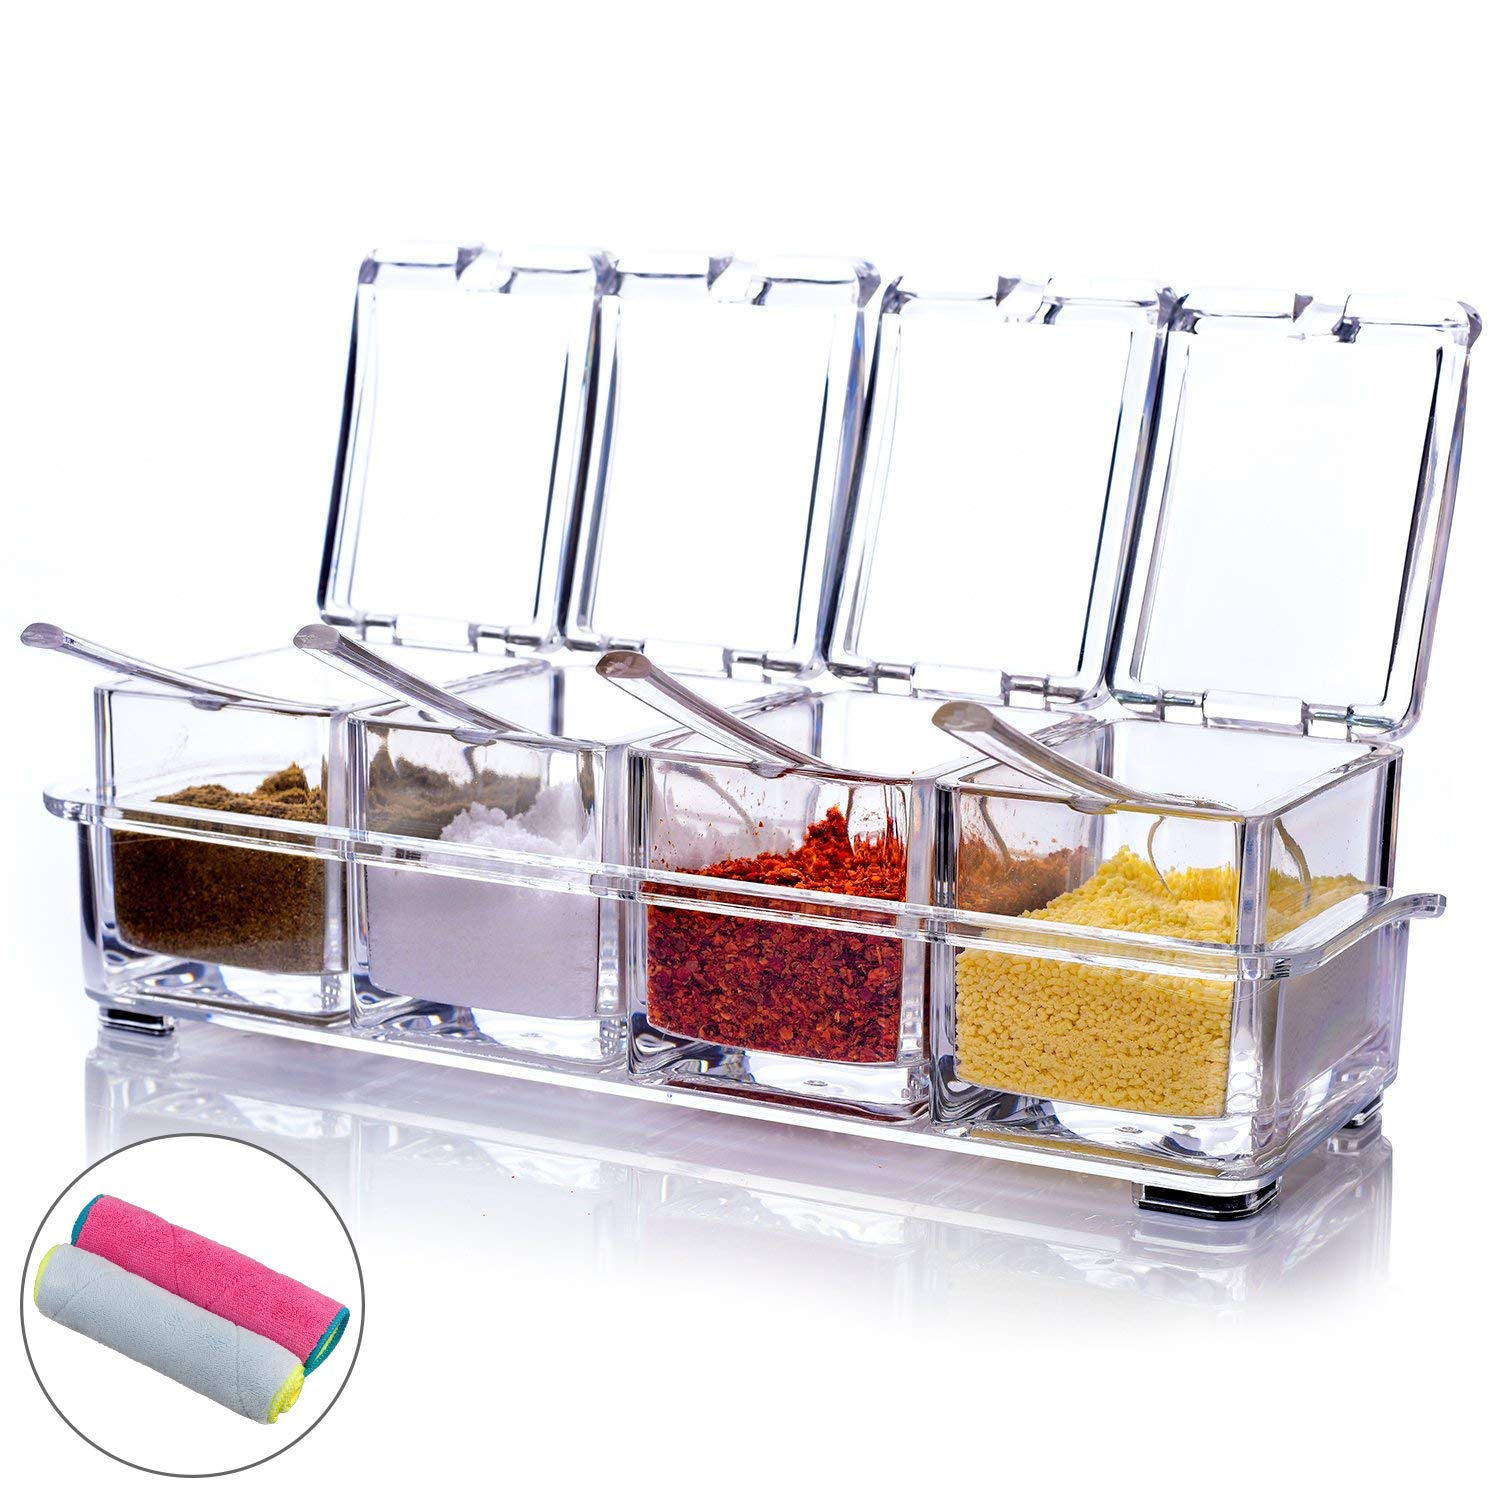 MONICA Clear Seasoning Rack Spice Pots-4 Piece Pure Acrylic Seasoning Box-Storage Container Condiment Jars-Cruet with Cover and Spoon-Included 2 Microfibre Cloths